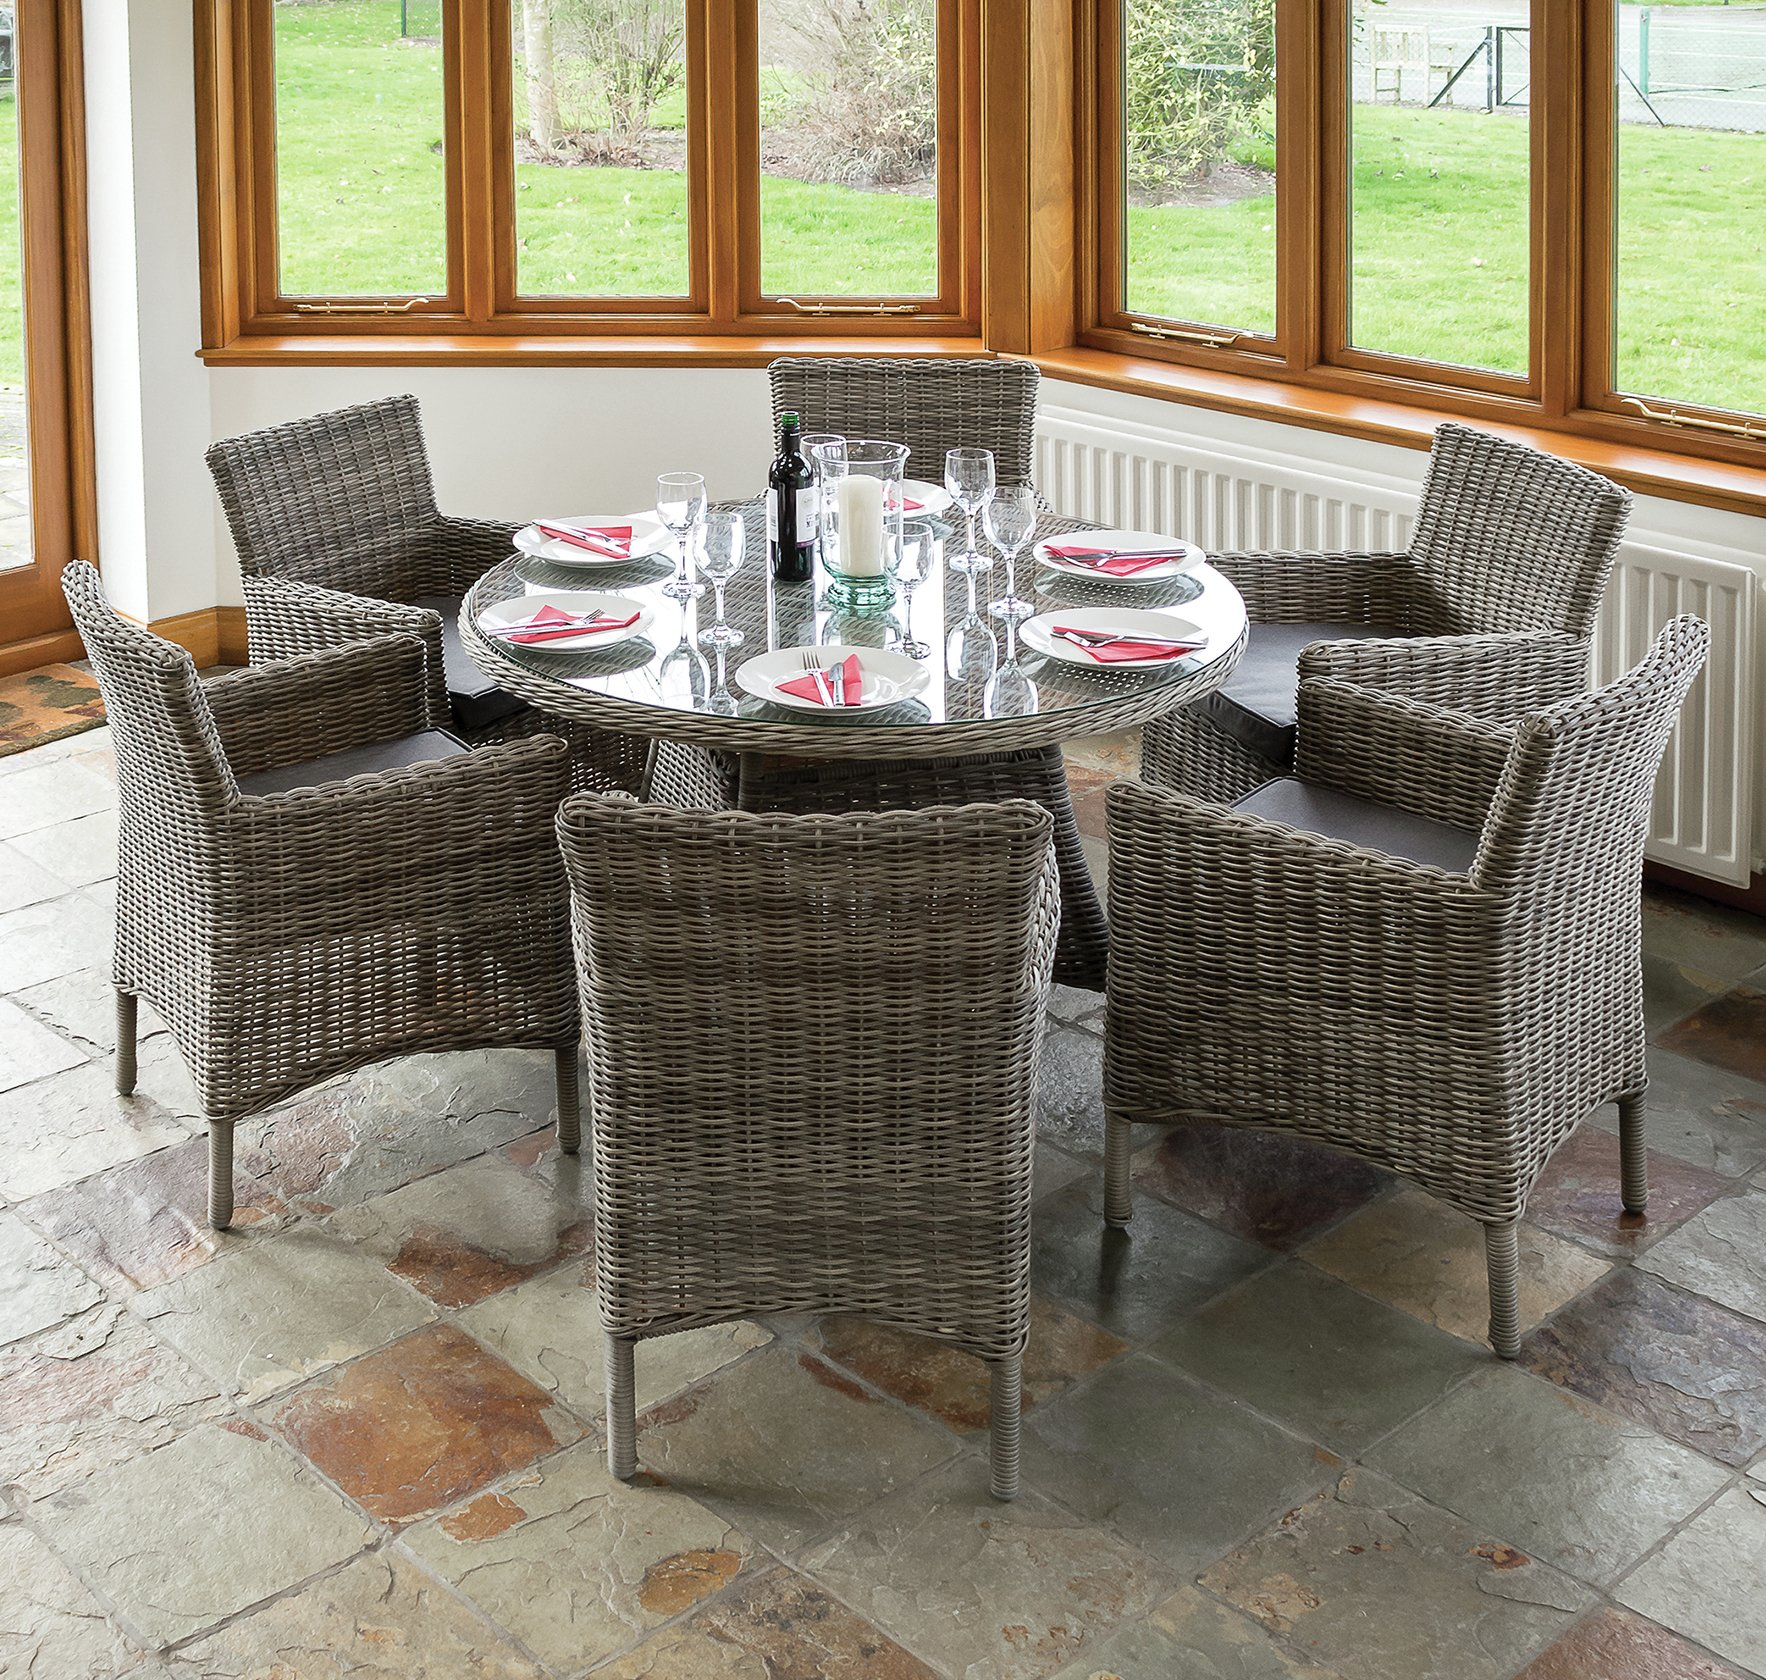 Richmond Rattan Garden Dining Set with 6 Chairs. lowest price